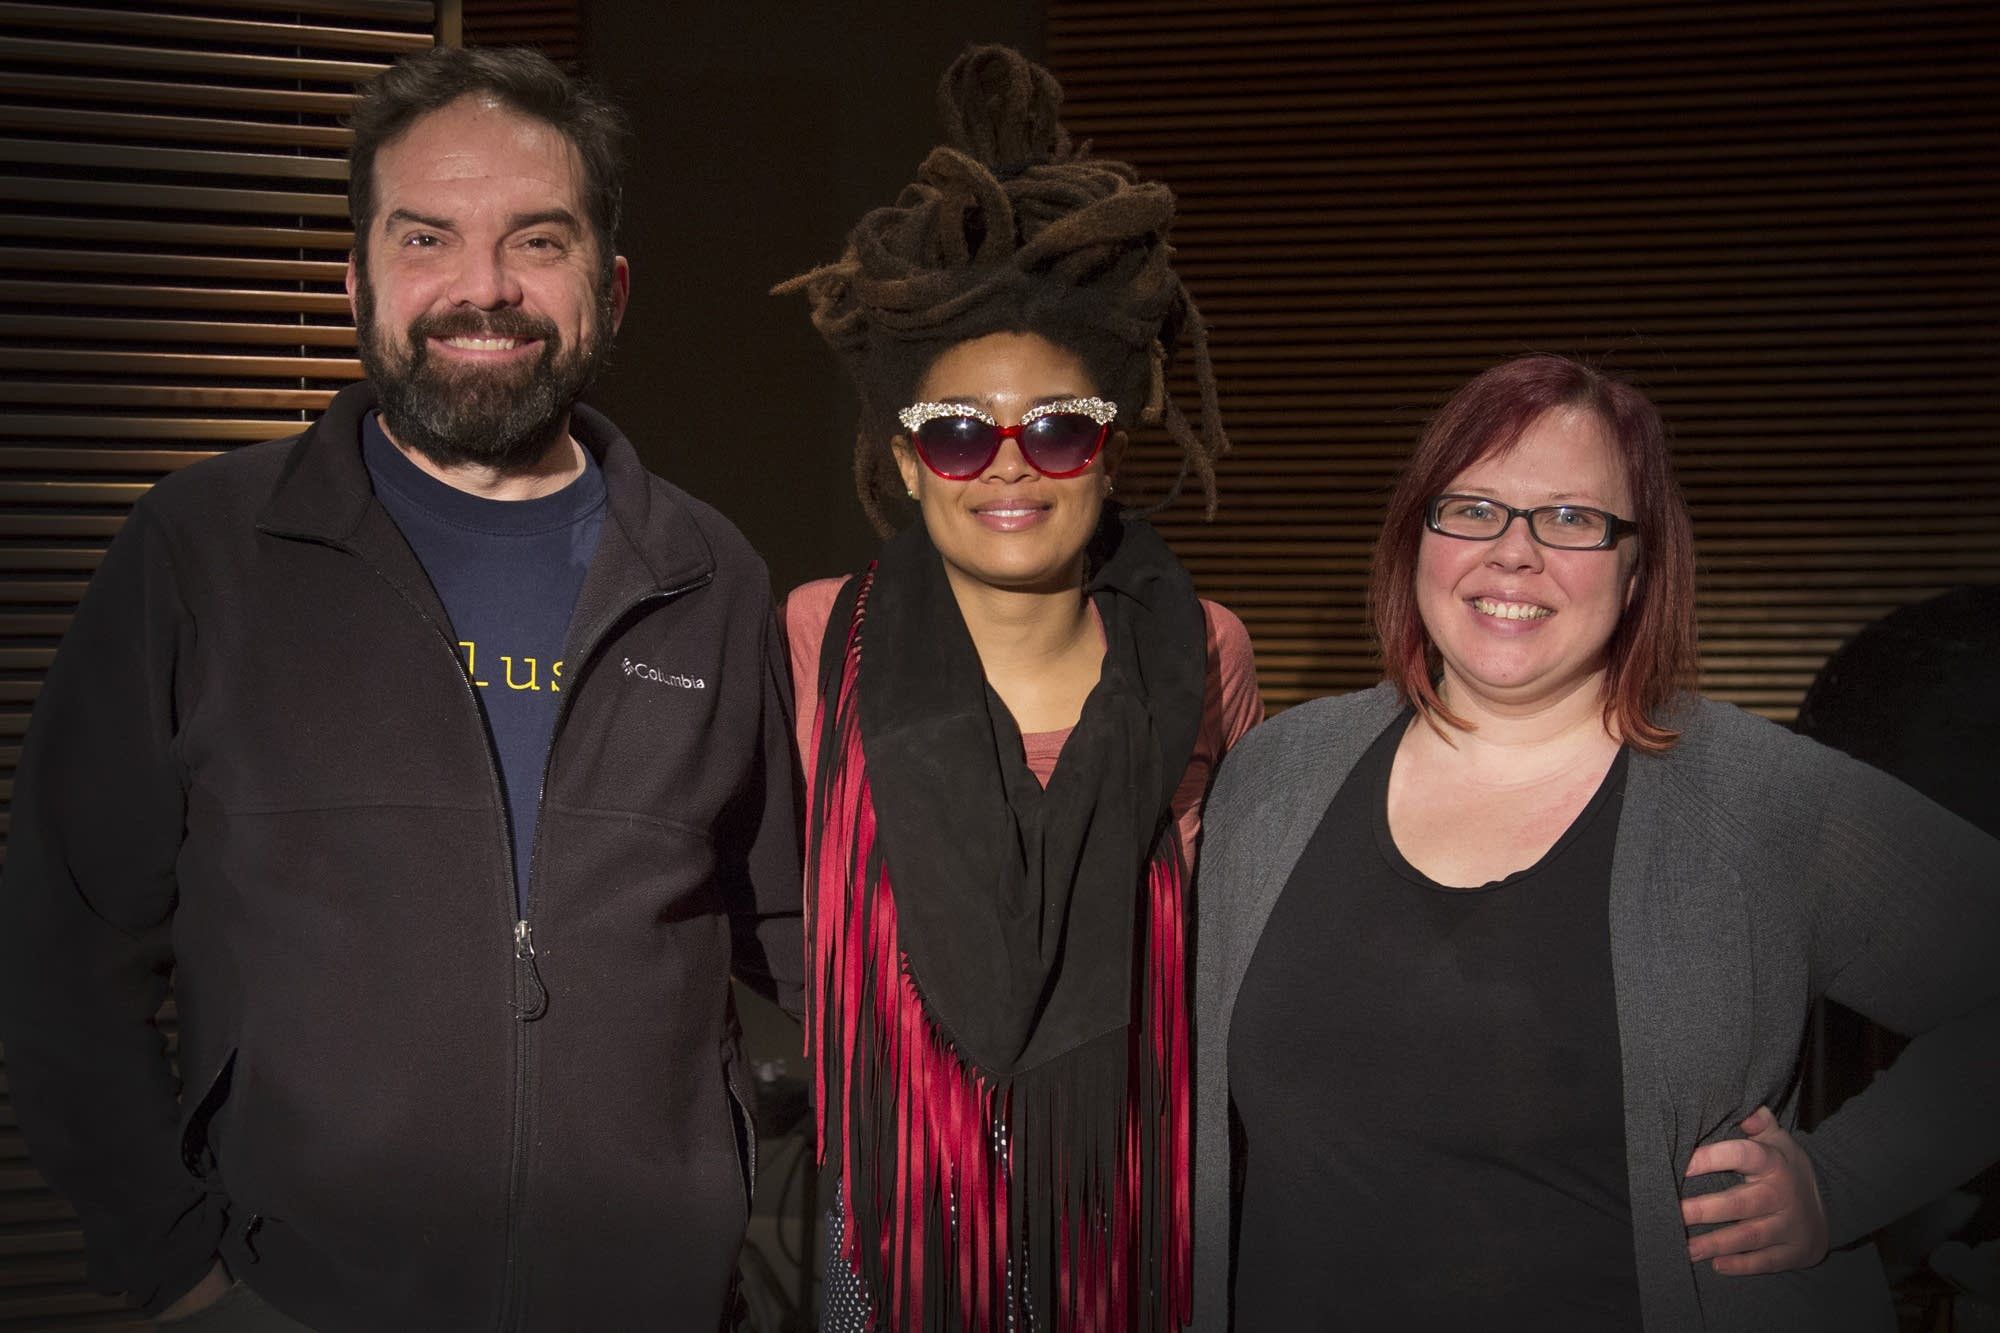 Brian Oake, Valerie June and Jill Riley in The Current studio.